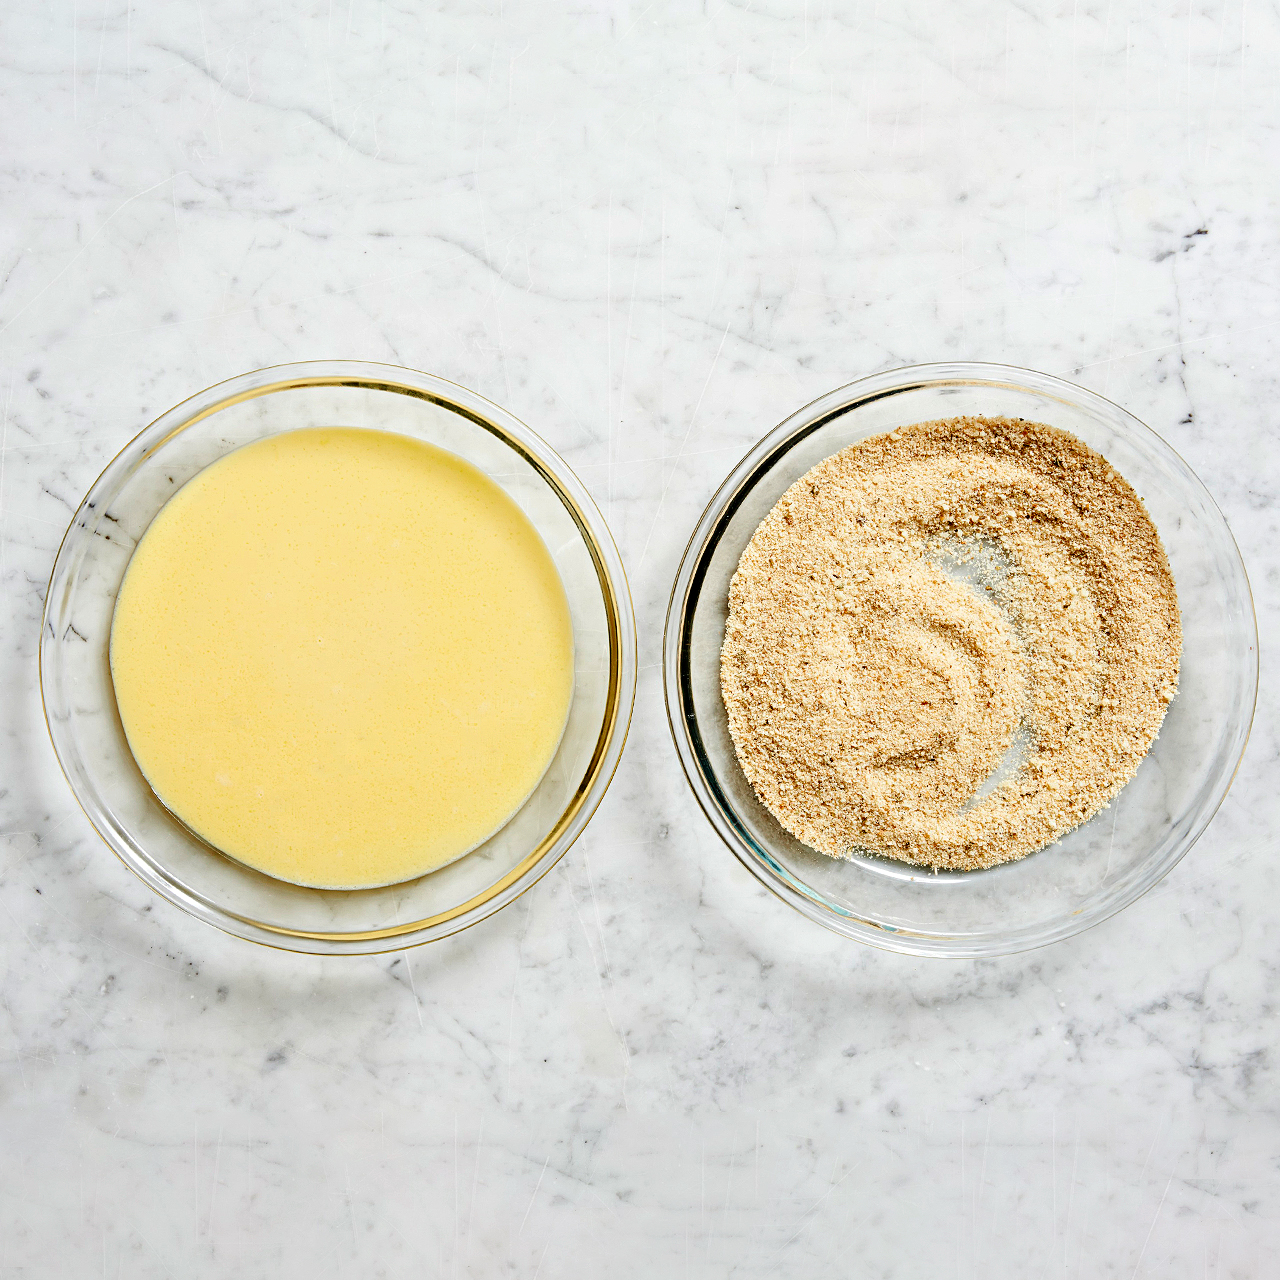 egg mixture and bread crumbs in dishes